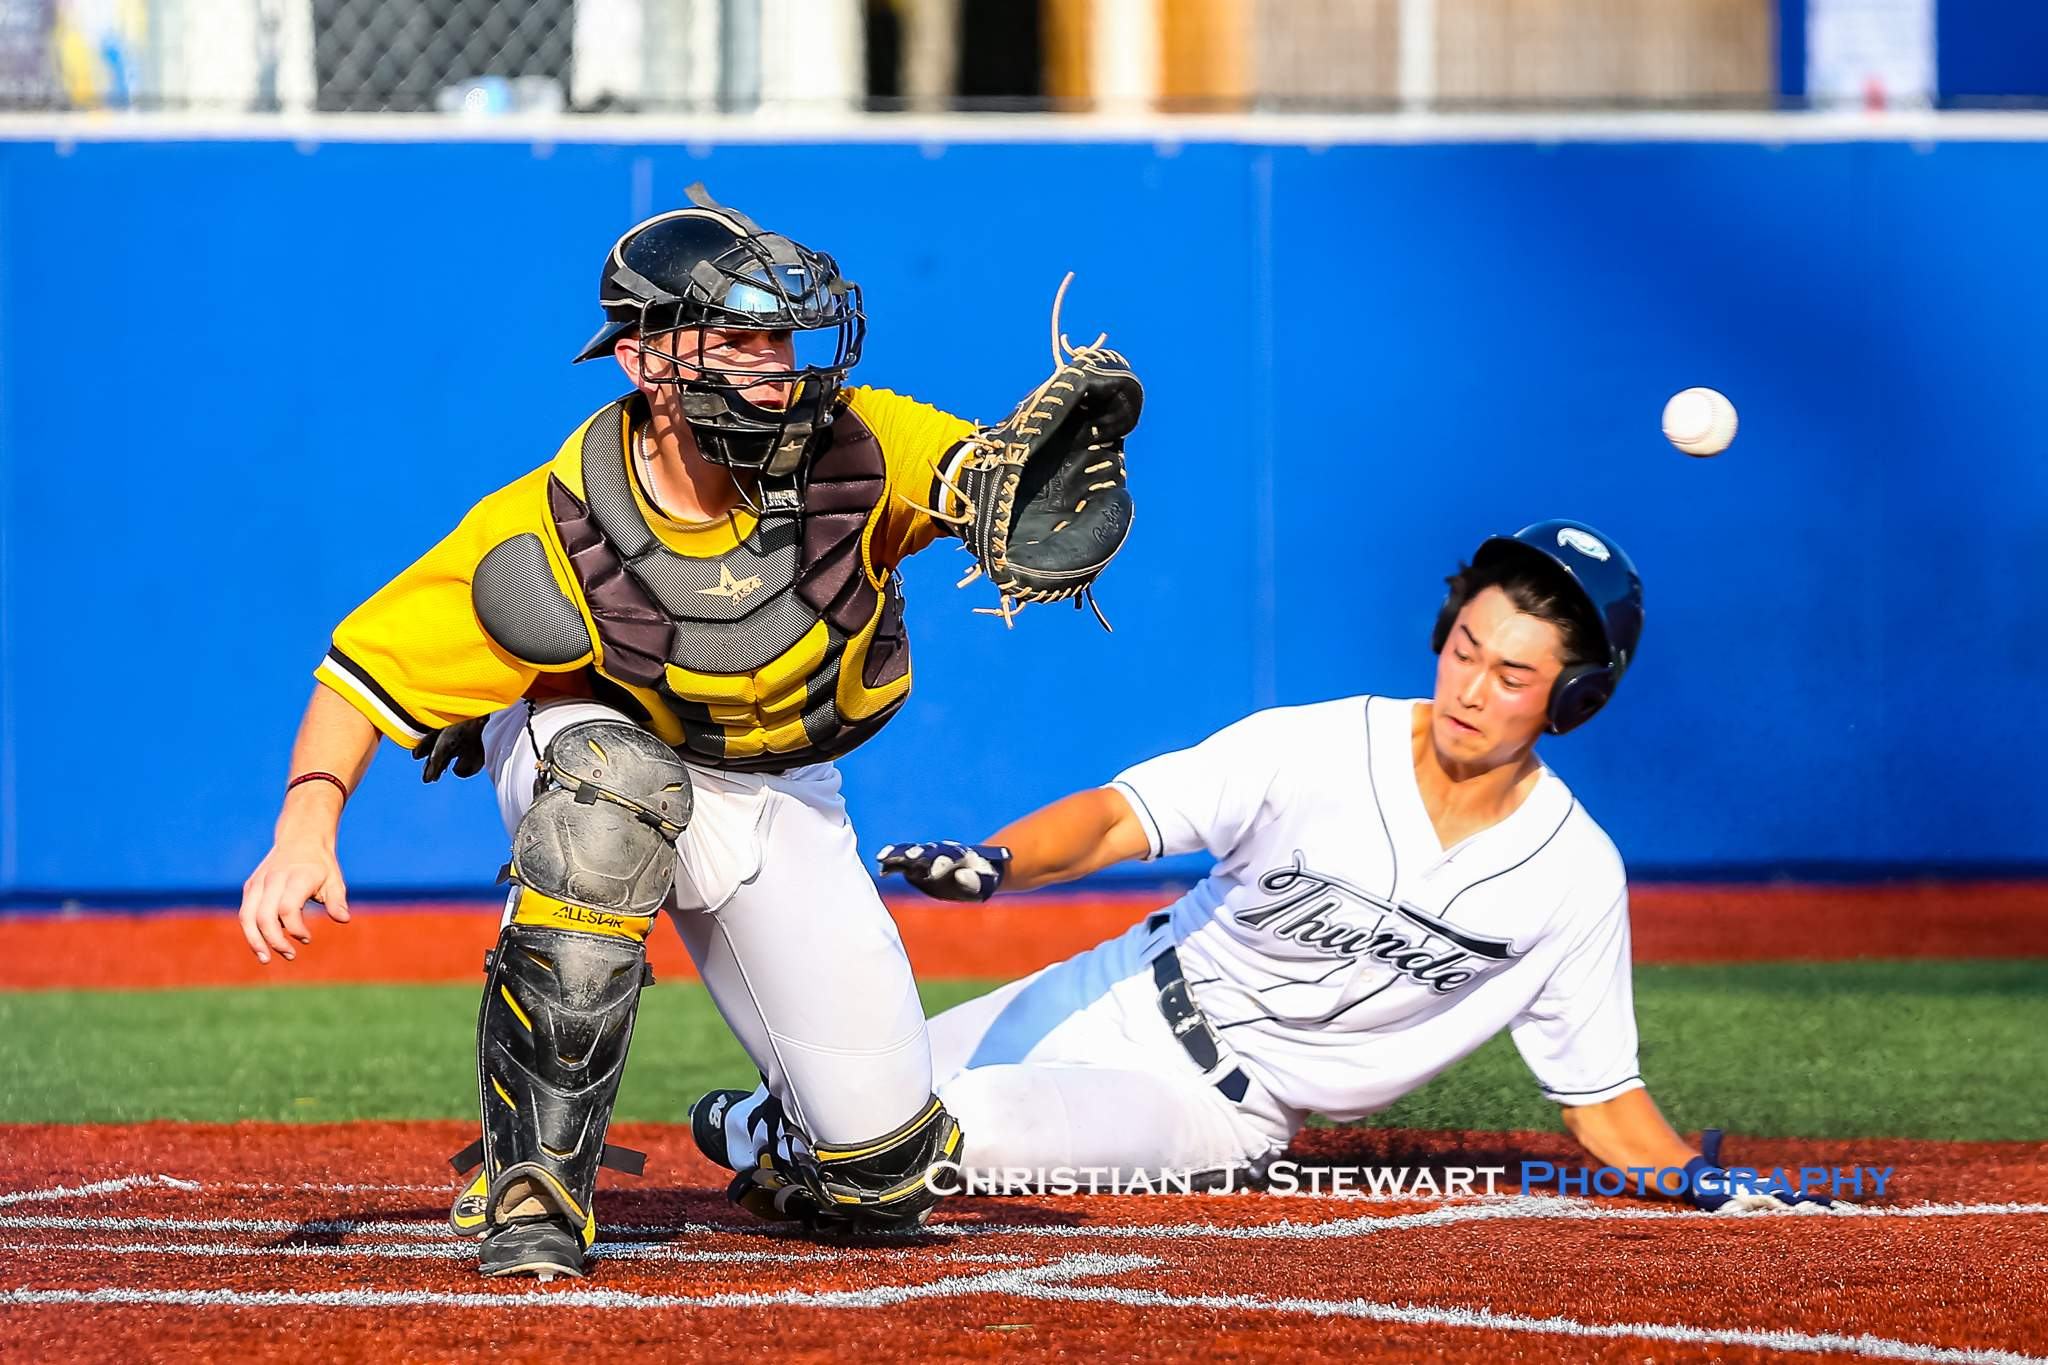 The Thunder scored their first run of the game when Angus Pegg beat this throw to Nanaimo catcher Connor Caskenette (Photo: Christian J. Stewart)